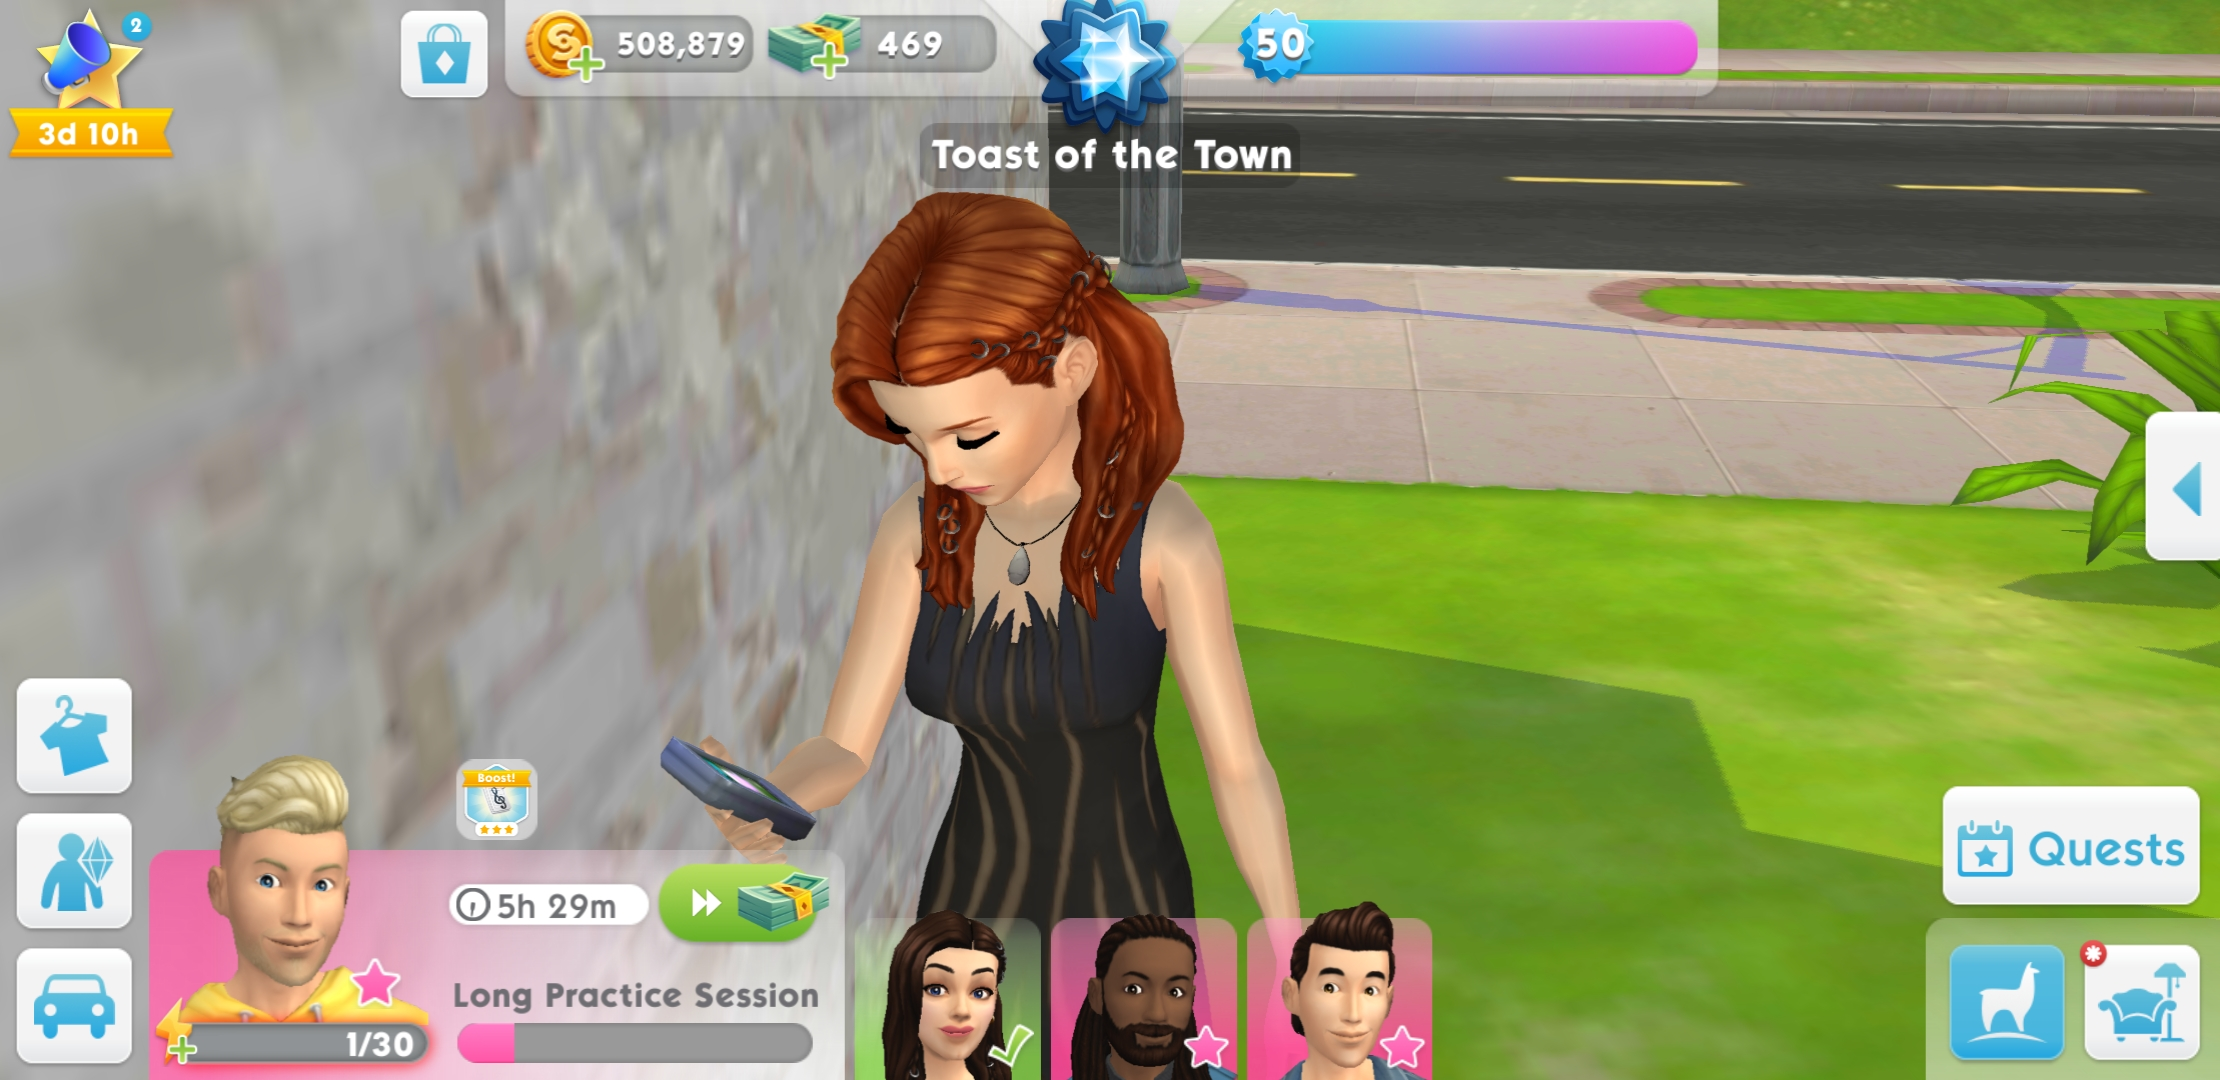 Screenshot_20190426-020357_The Sims.jpg